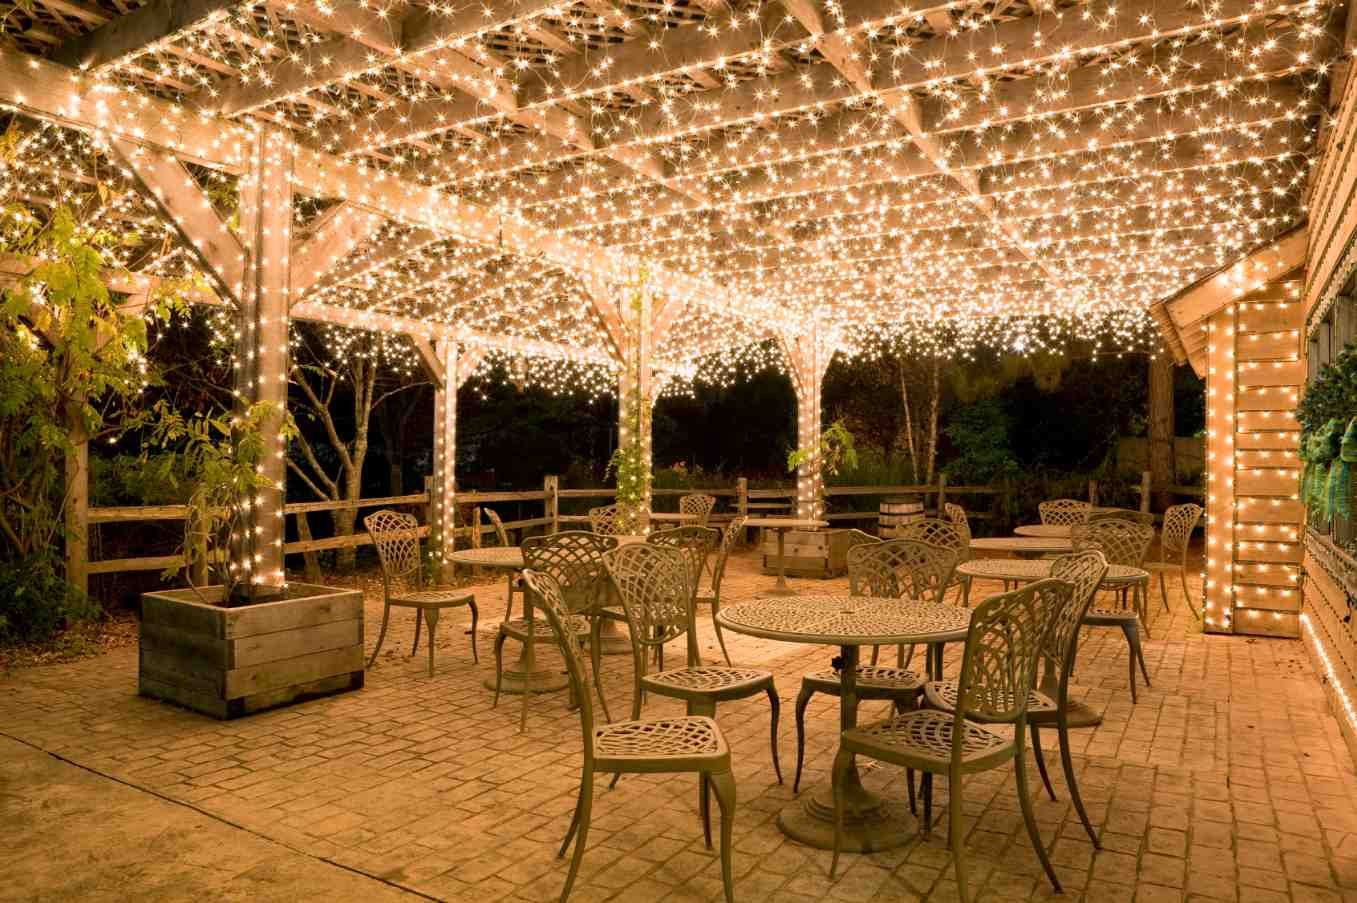 Fairy Light Ceiling: 17 Best Images About Wedding Lighting On Pinterest Dance Floors, Receptions  And A Website. 17 Best Images About Wedding Lighting On Pinterest Dance  Floors,Lighting